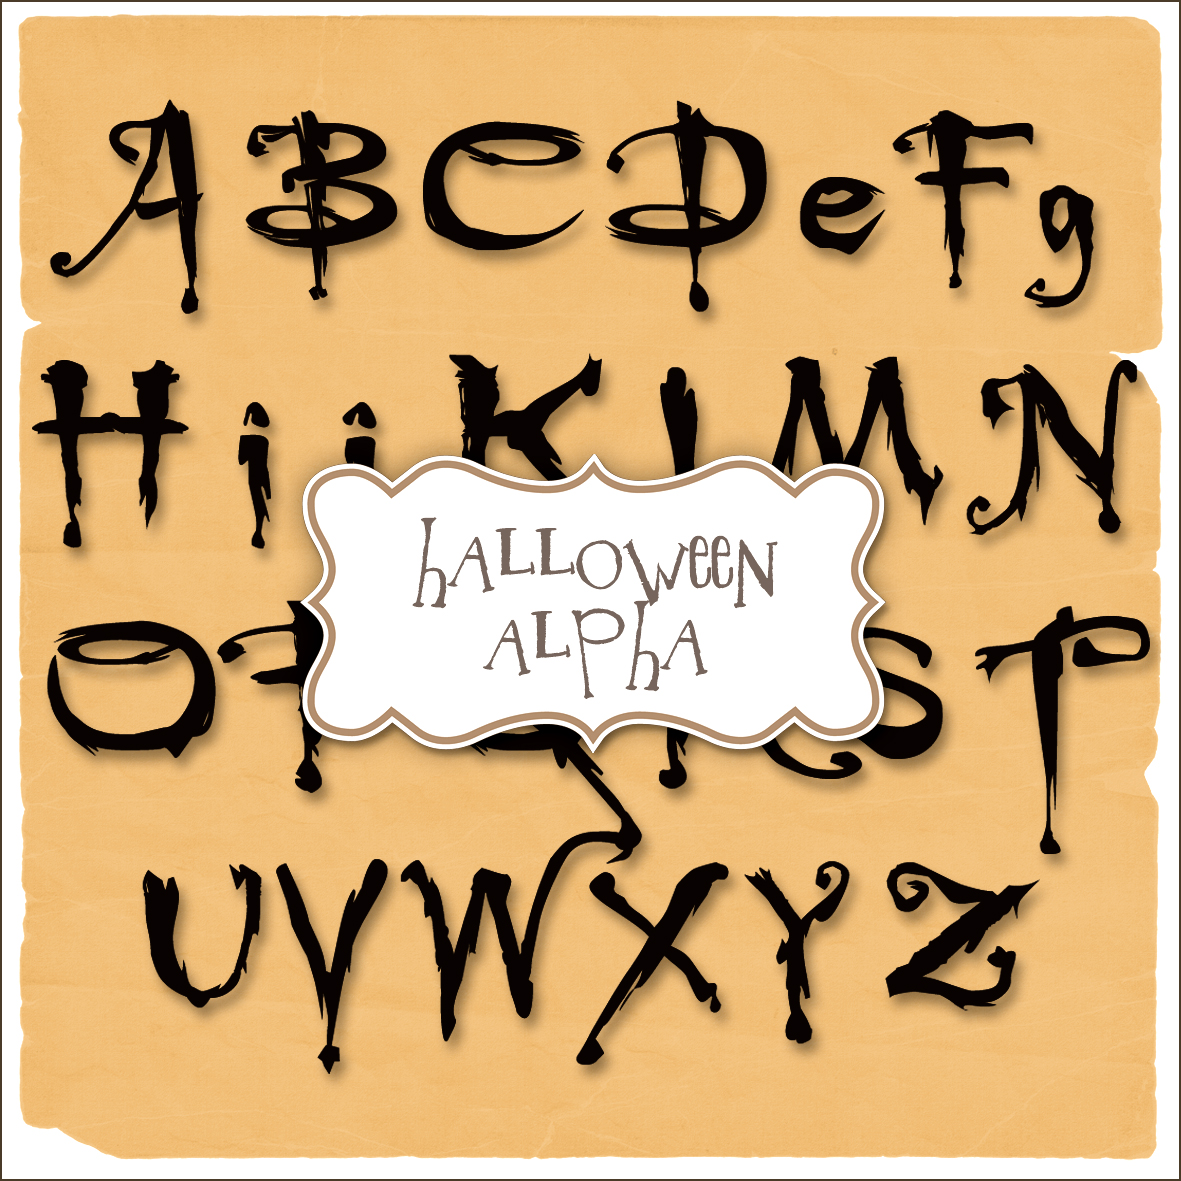 15 Halloween Spooky Font Template Images